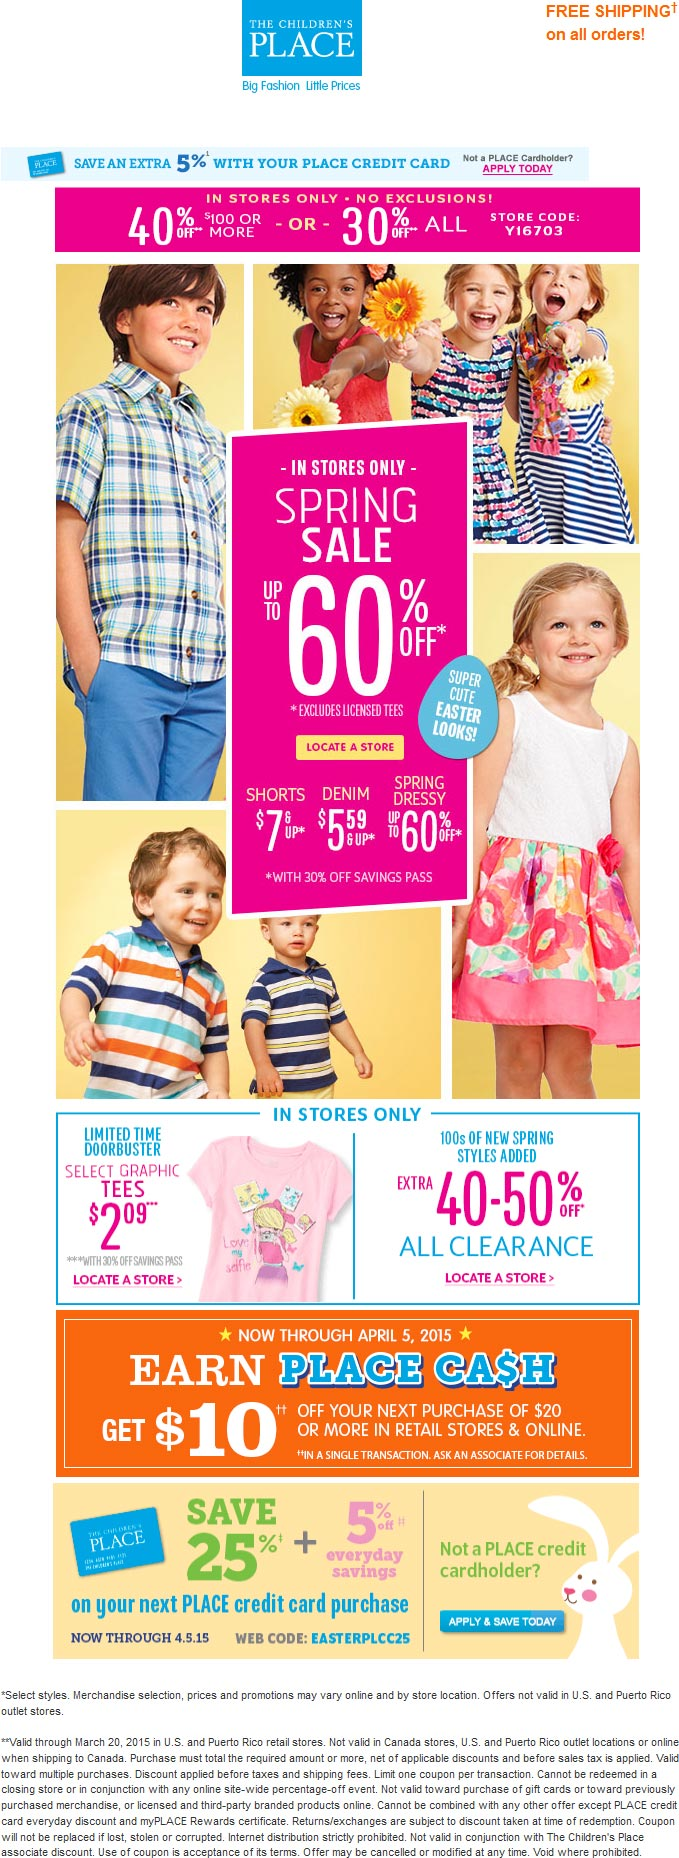 Childrens Place Coupon April 2017 30-40% off everyhing at The Childrens Place